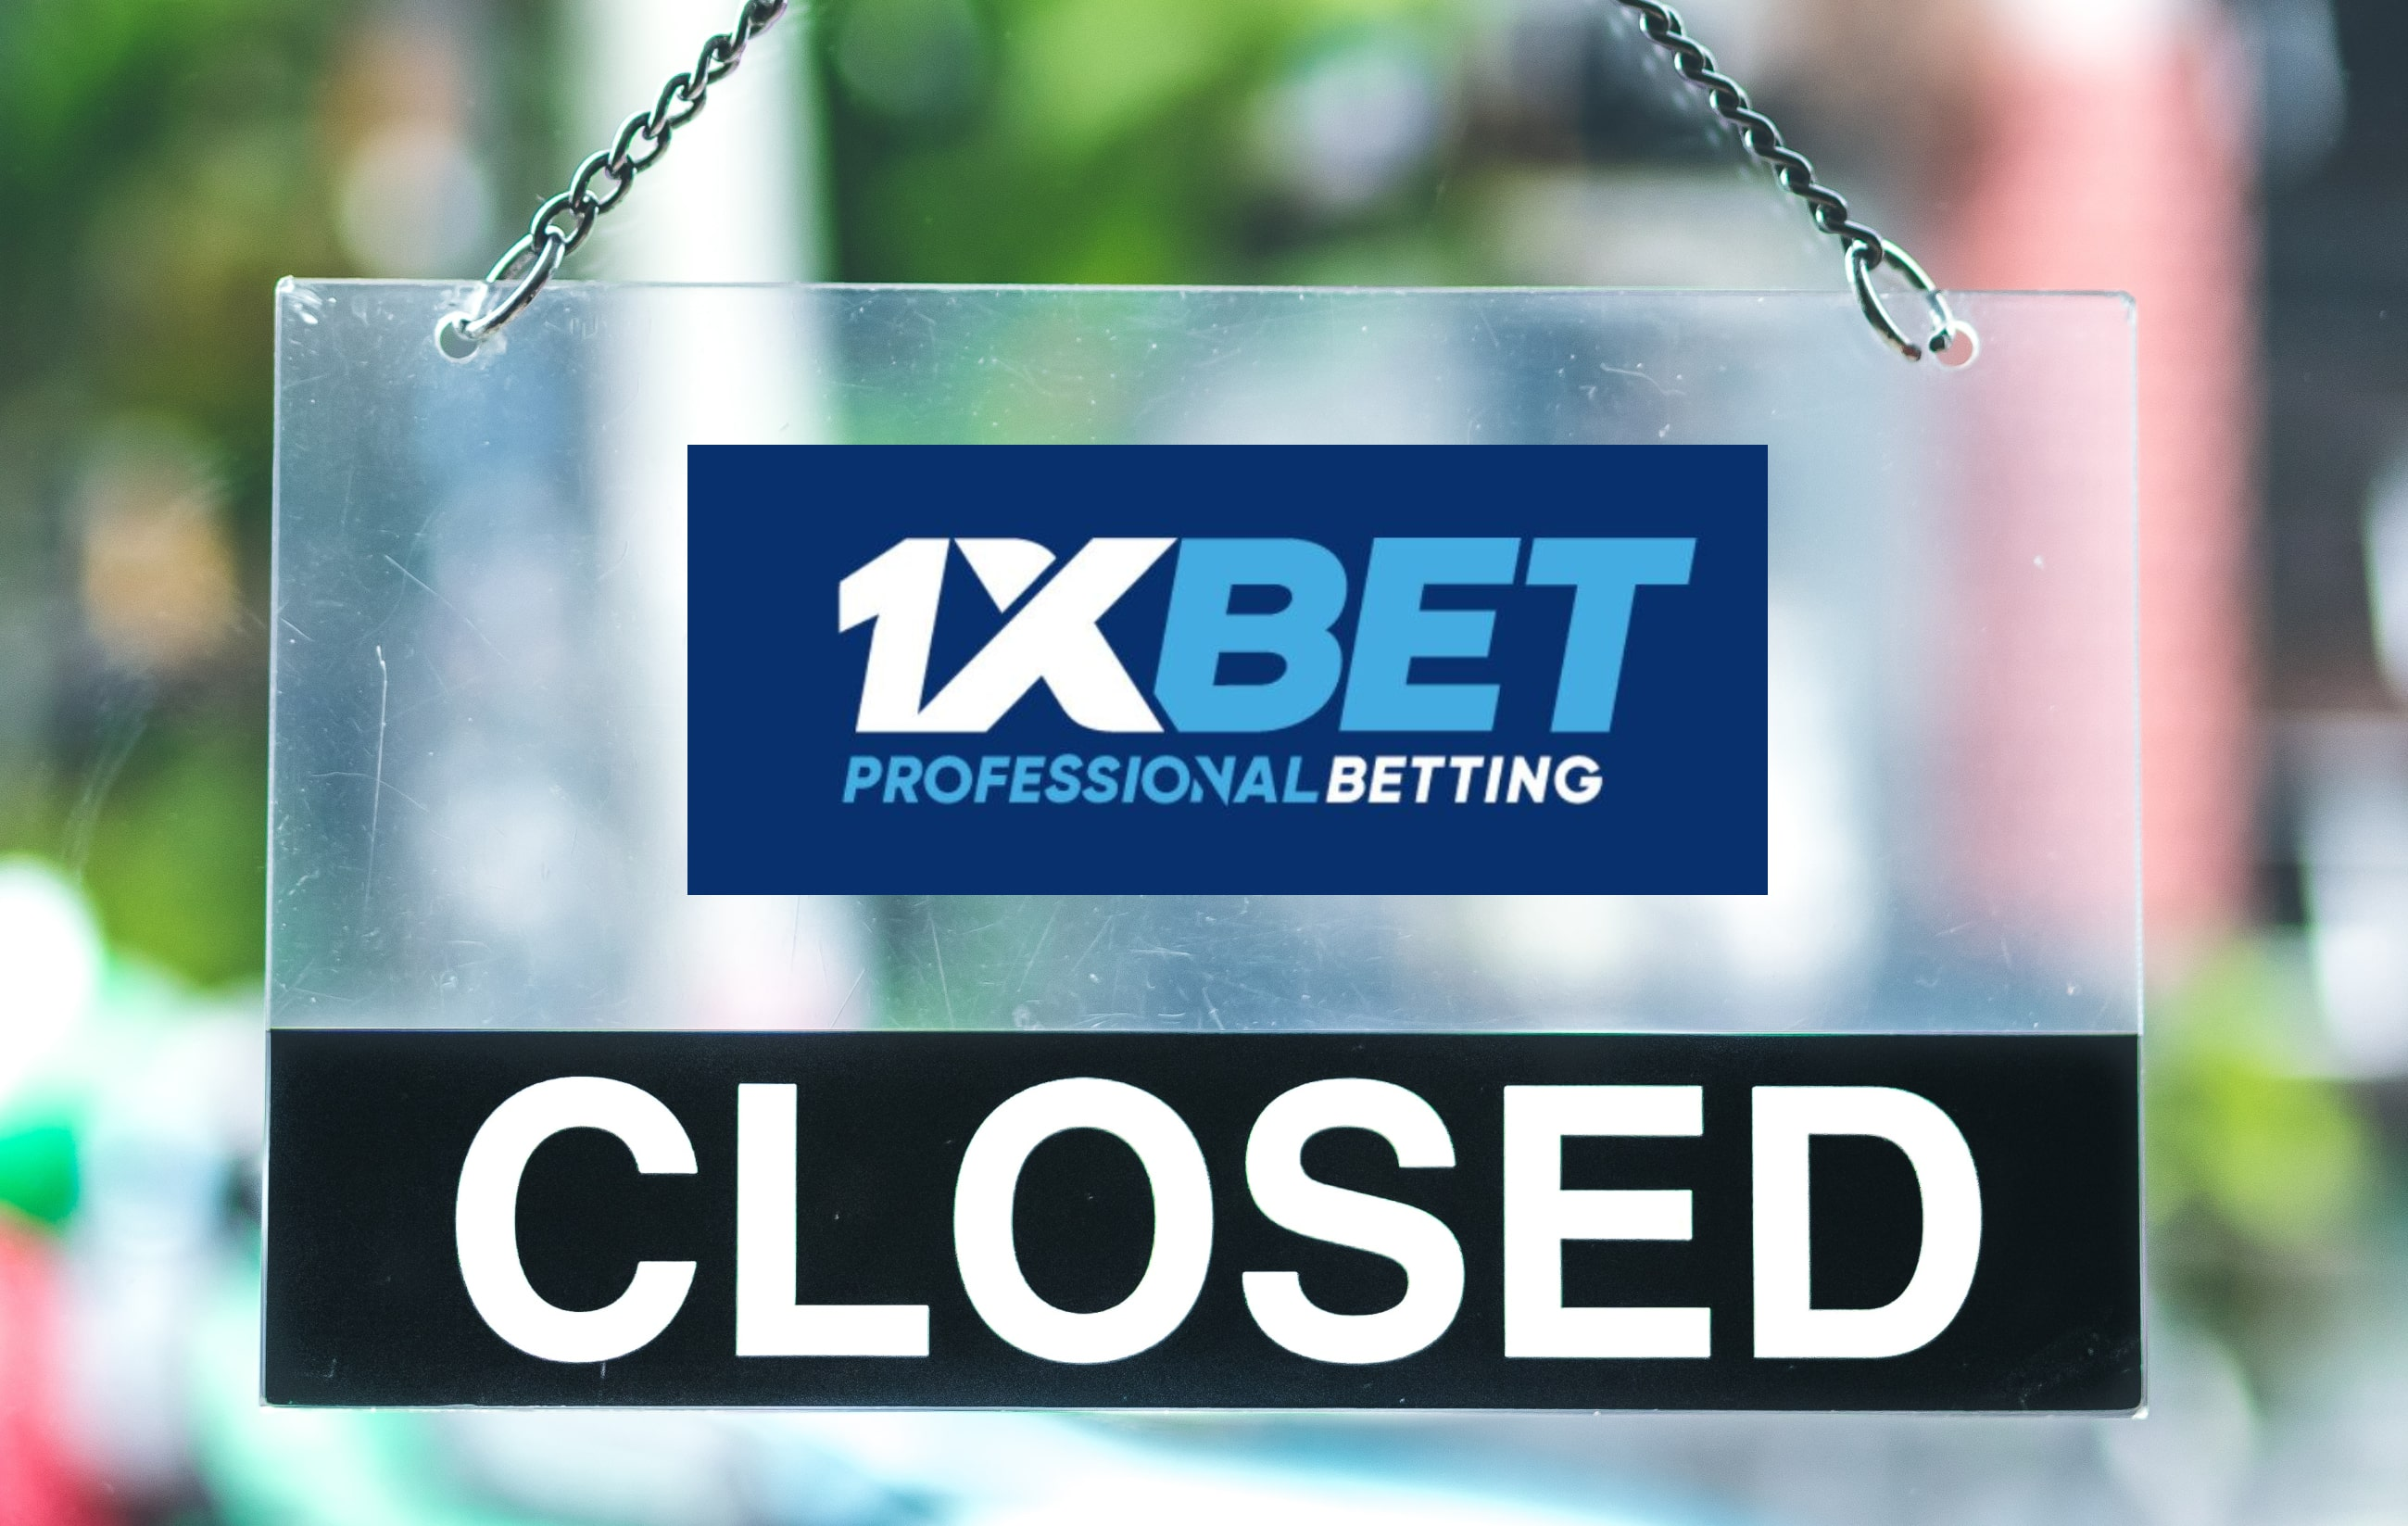 1xBet Closes UK Site After the Sunday Times' Revelations